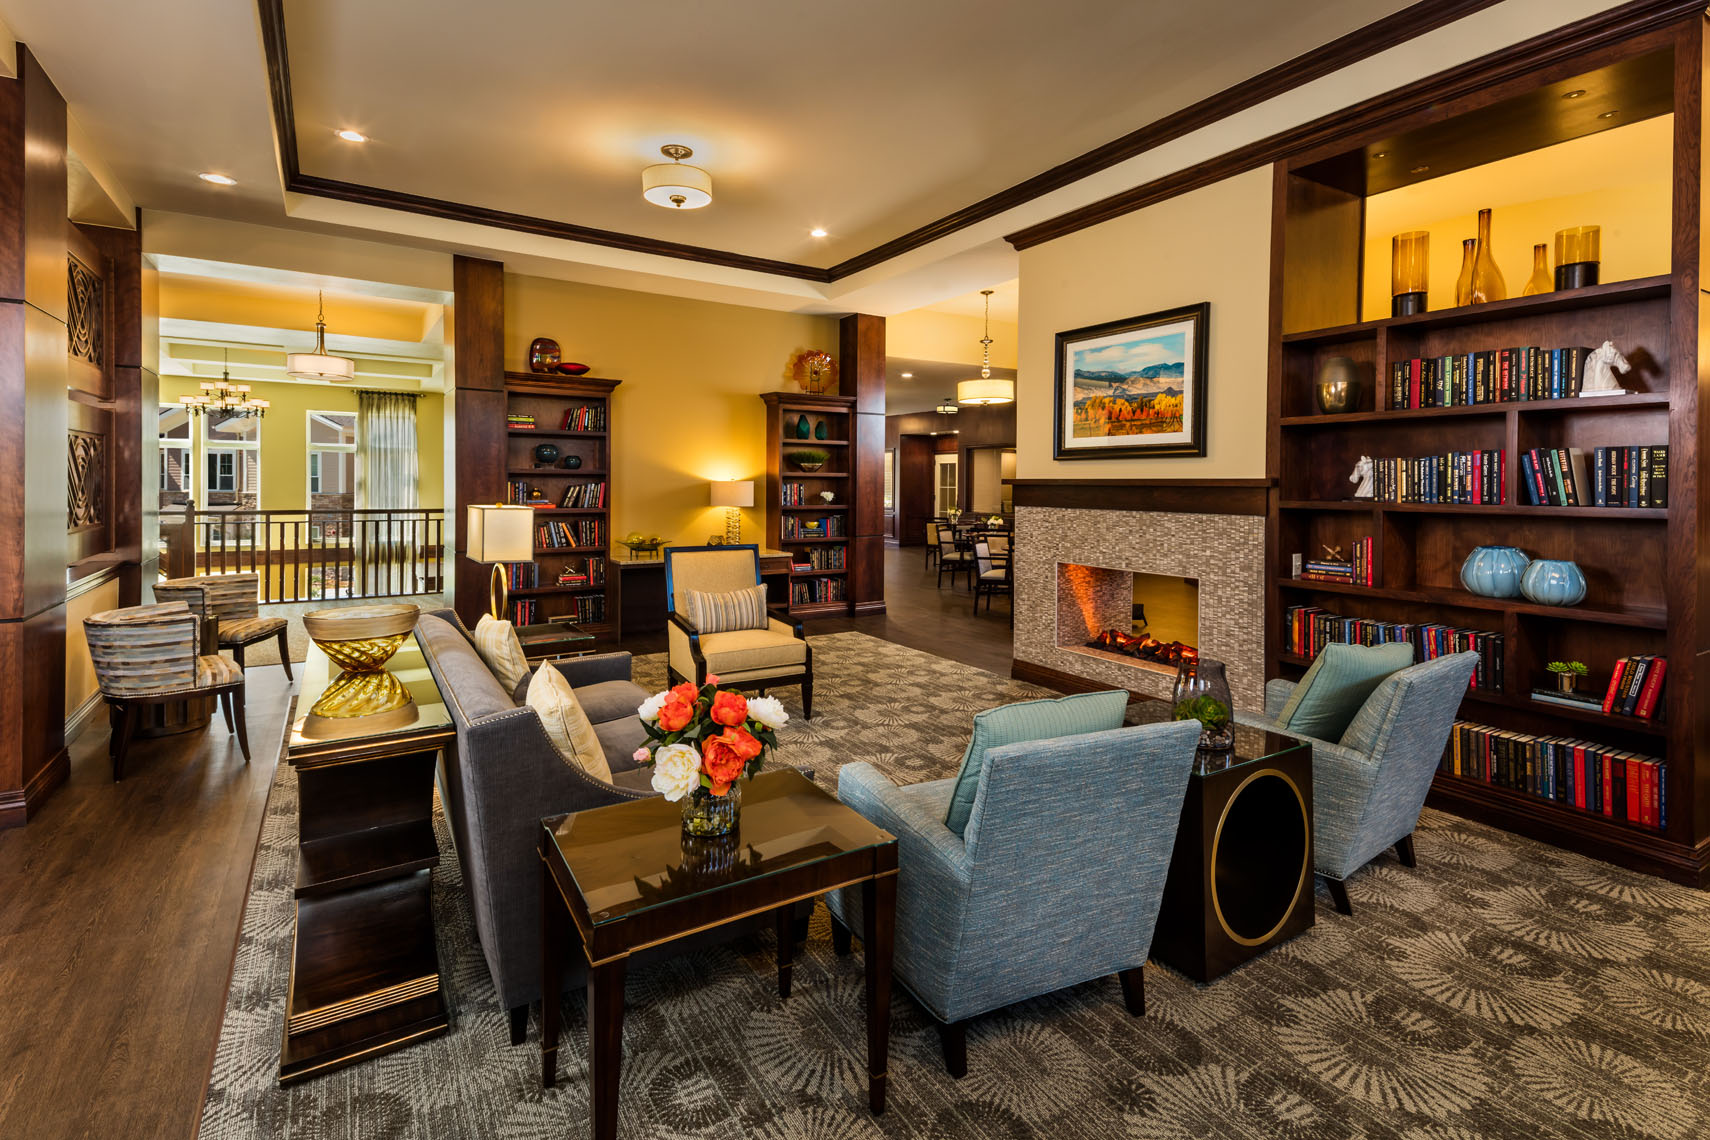 Senior living retirement facility /building photographed for the architect and interior designer in denver colorado